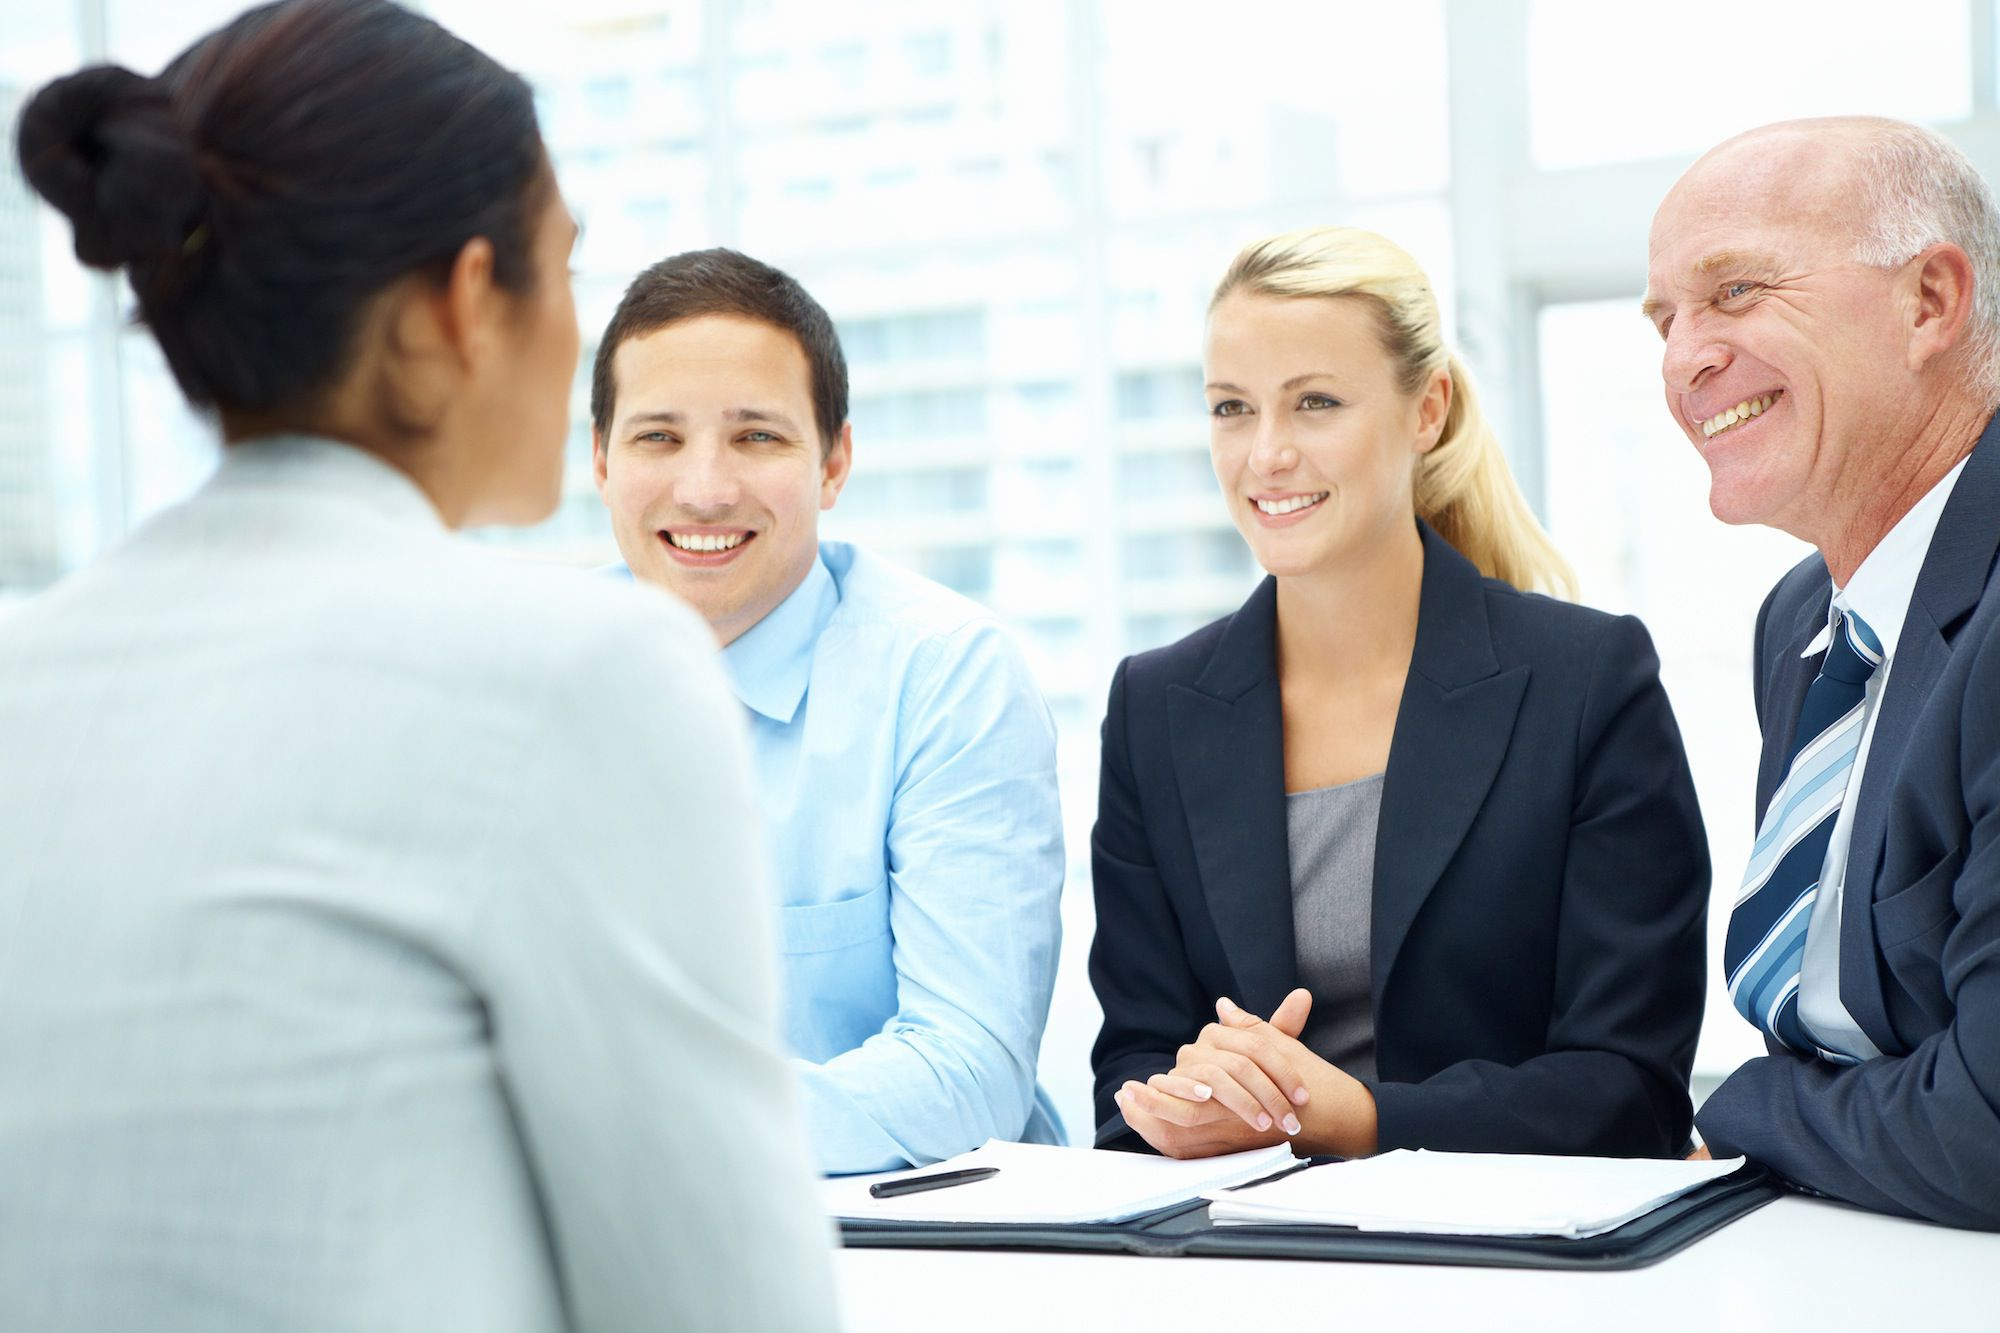 6 winning interview tips to get a job - Facing An Interview Tips And Techniques